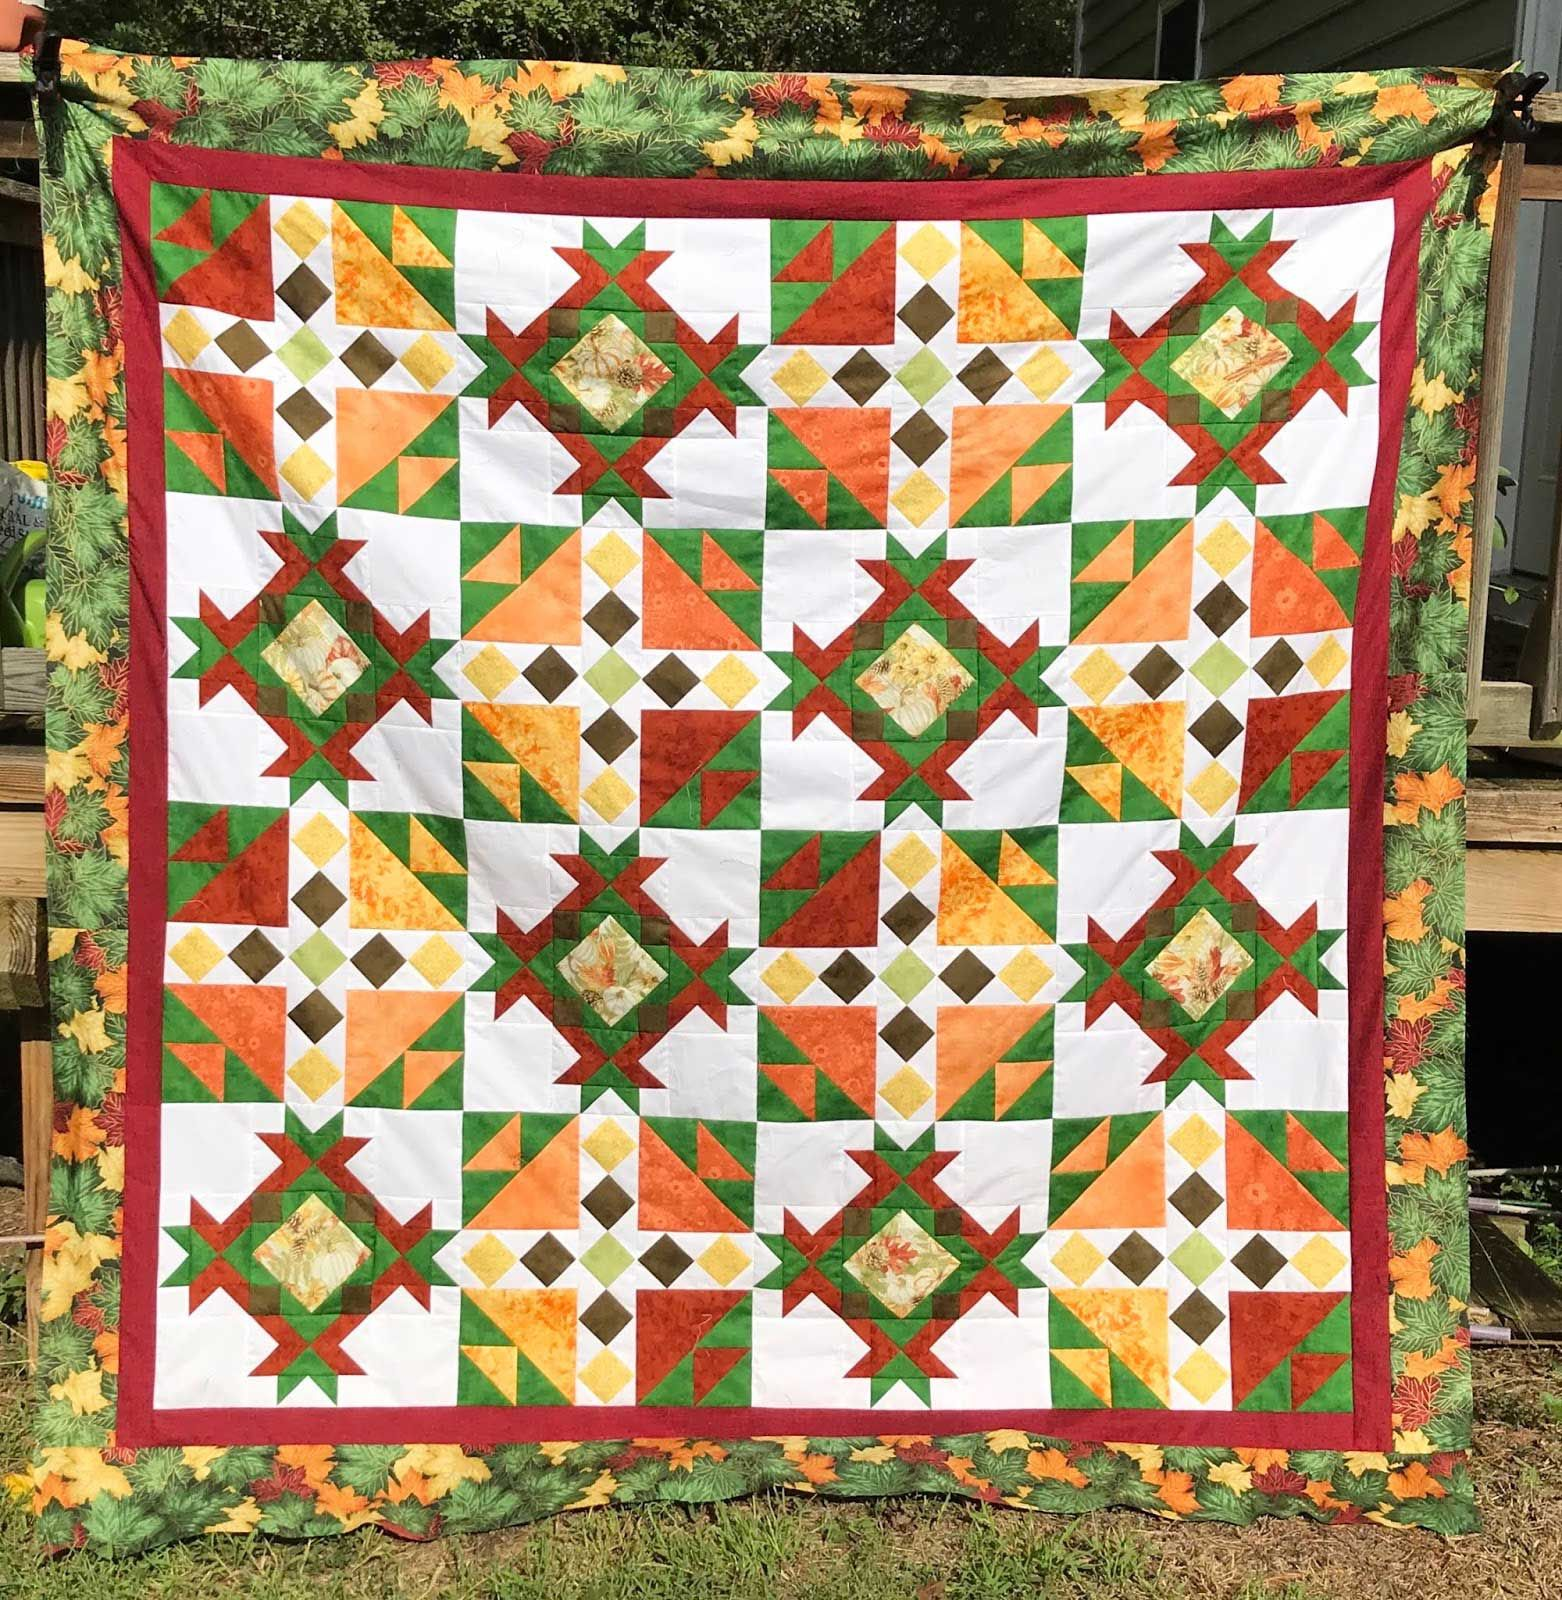 The Best one of Handy Wedding Ring Quilt The best one from